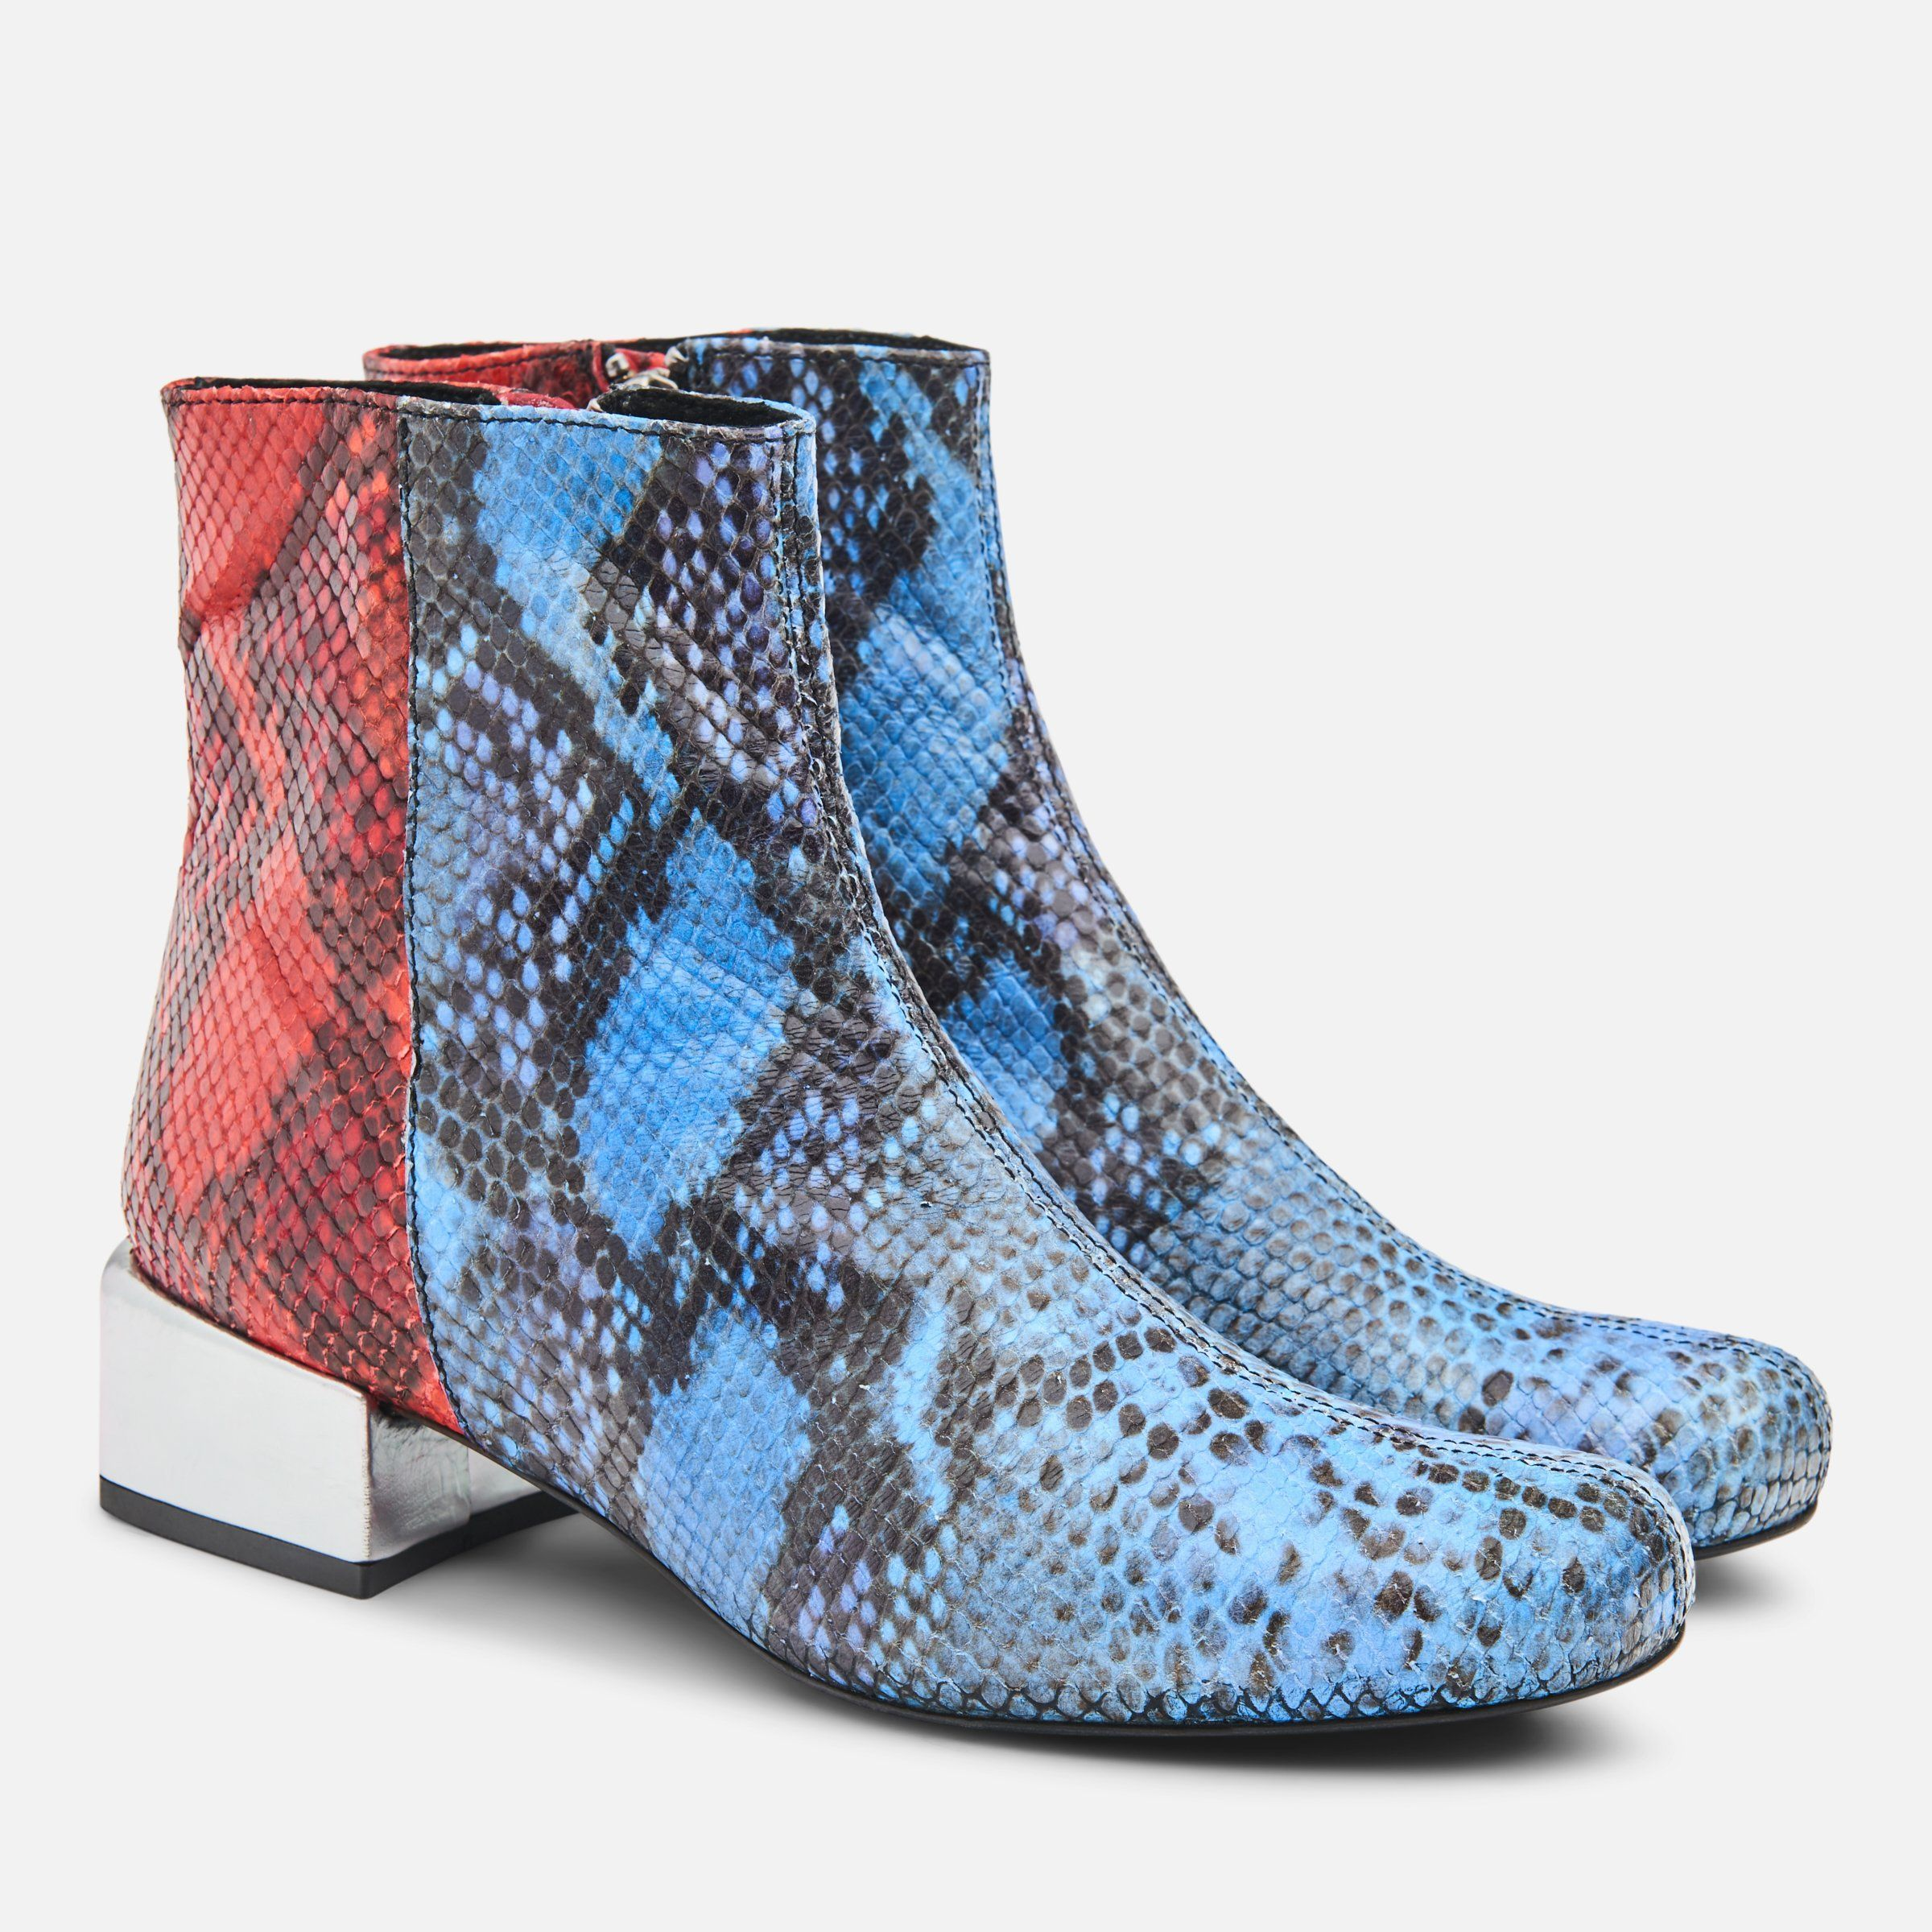 BOWIE BOOT